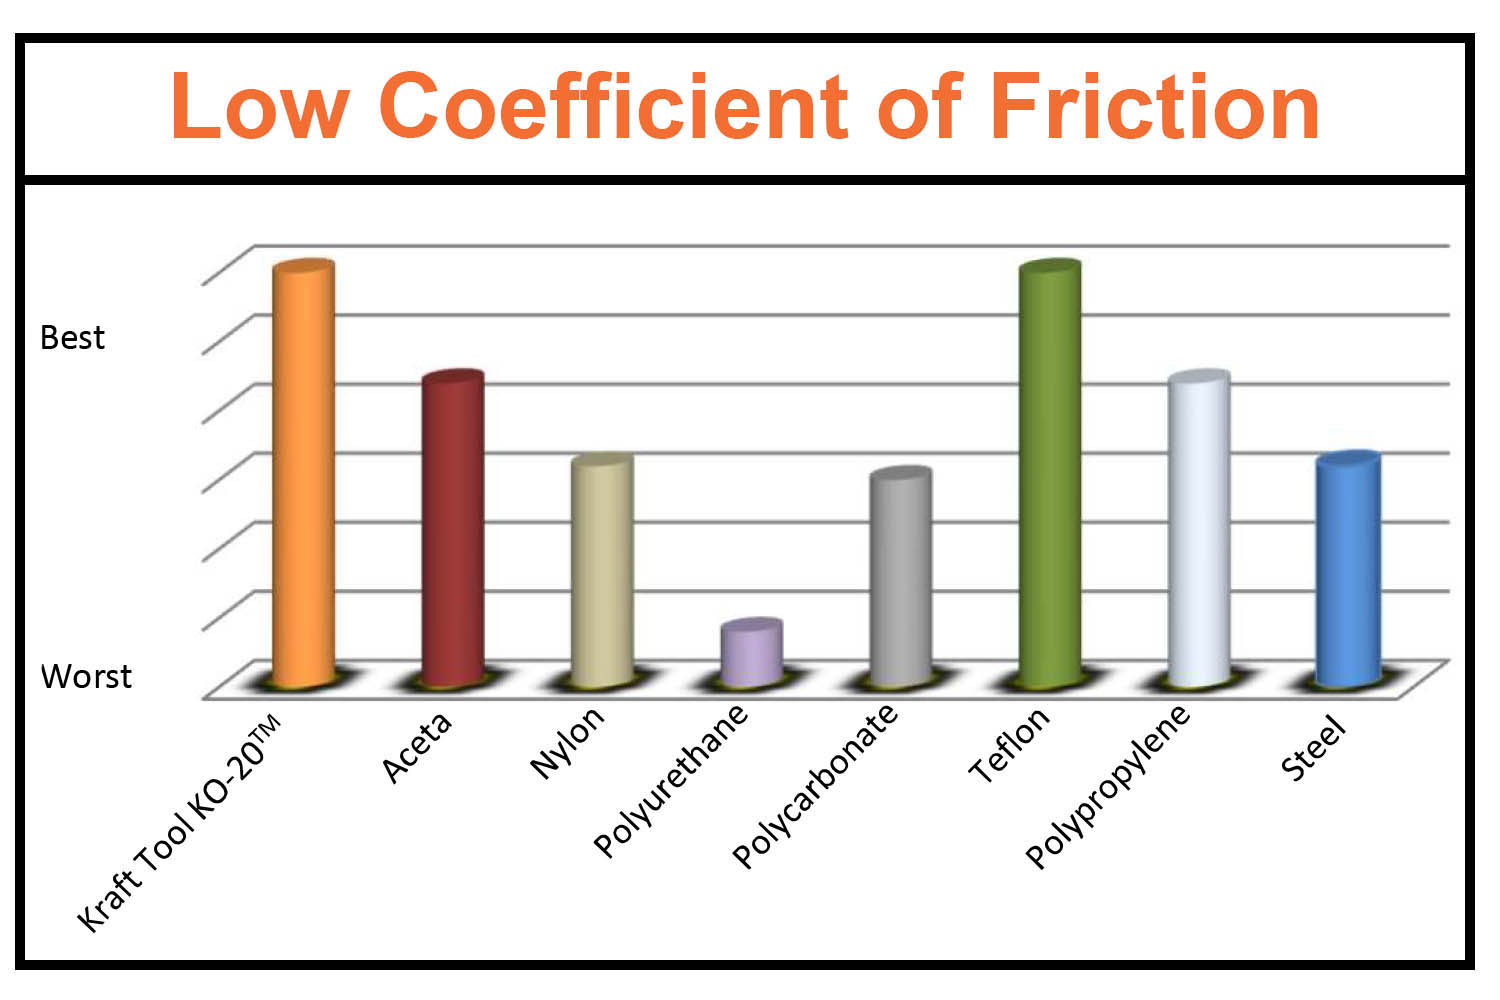 KO-20 has a low coefficient of friction